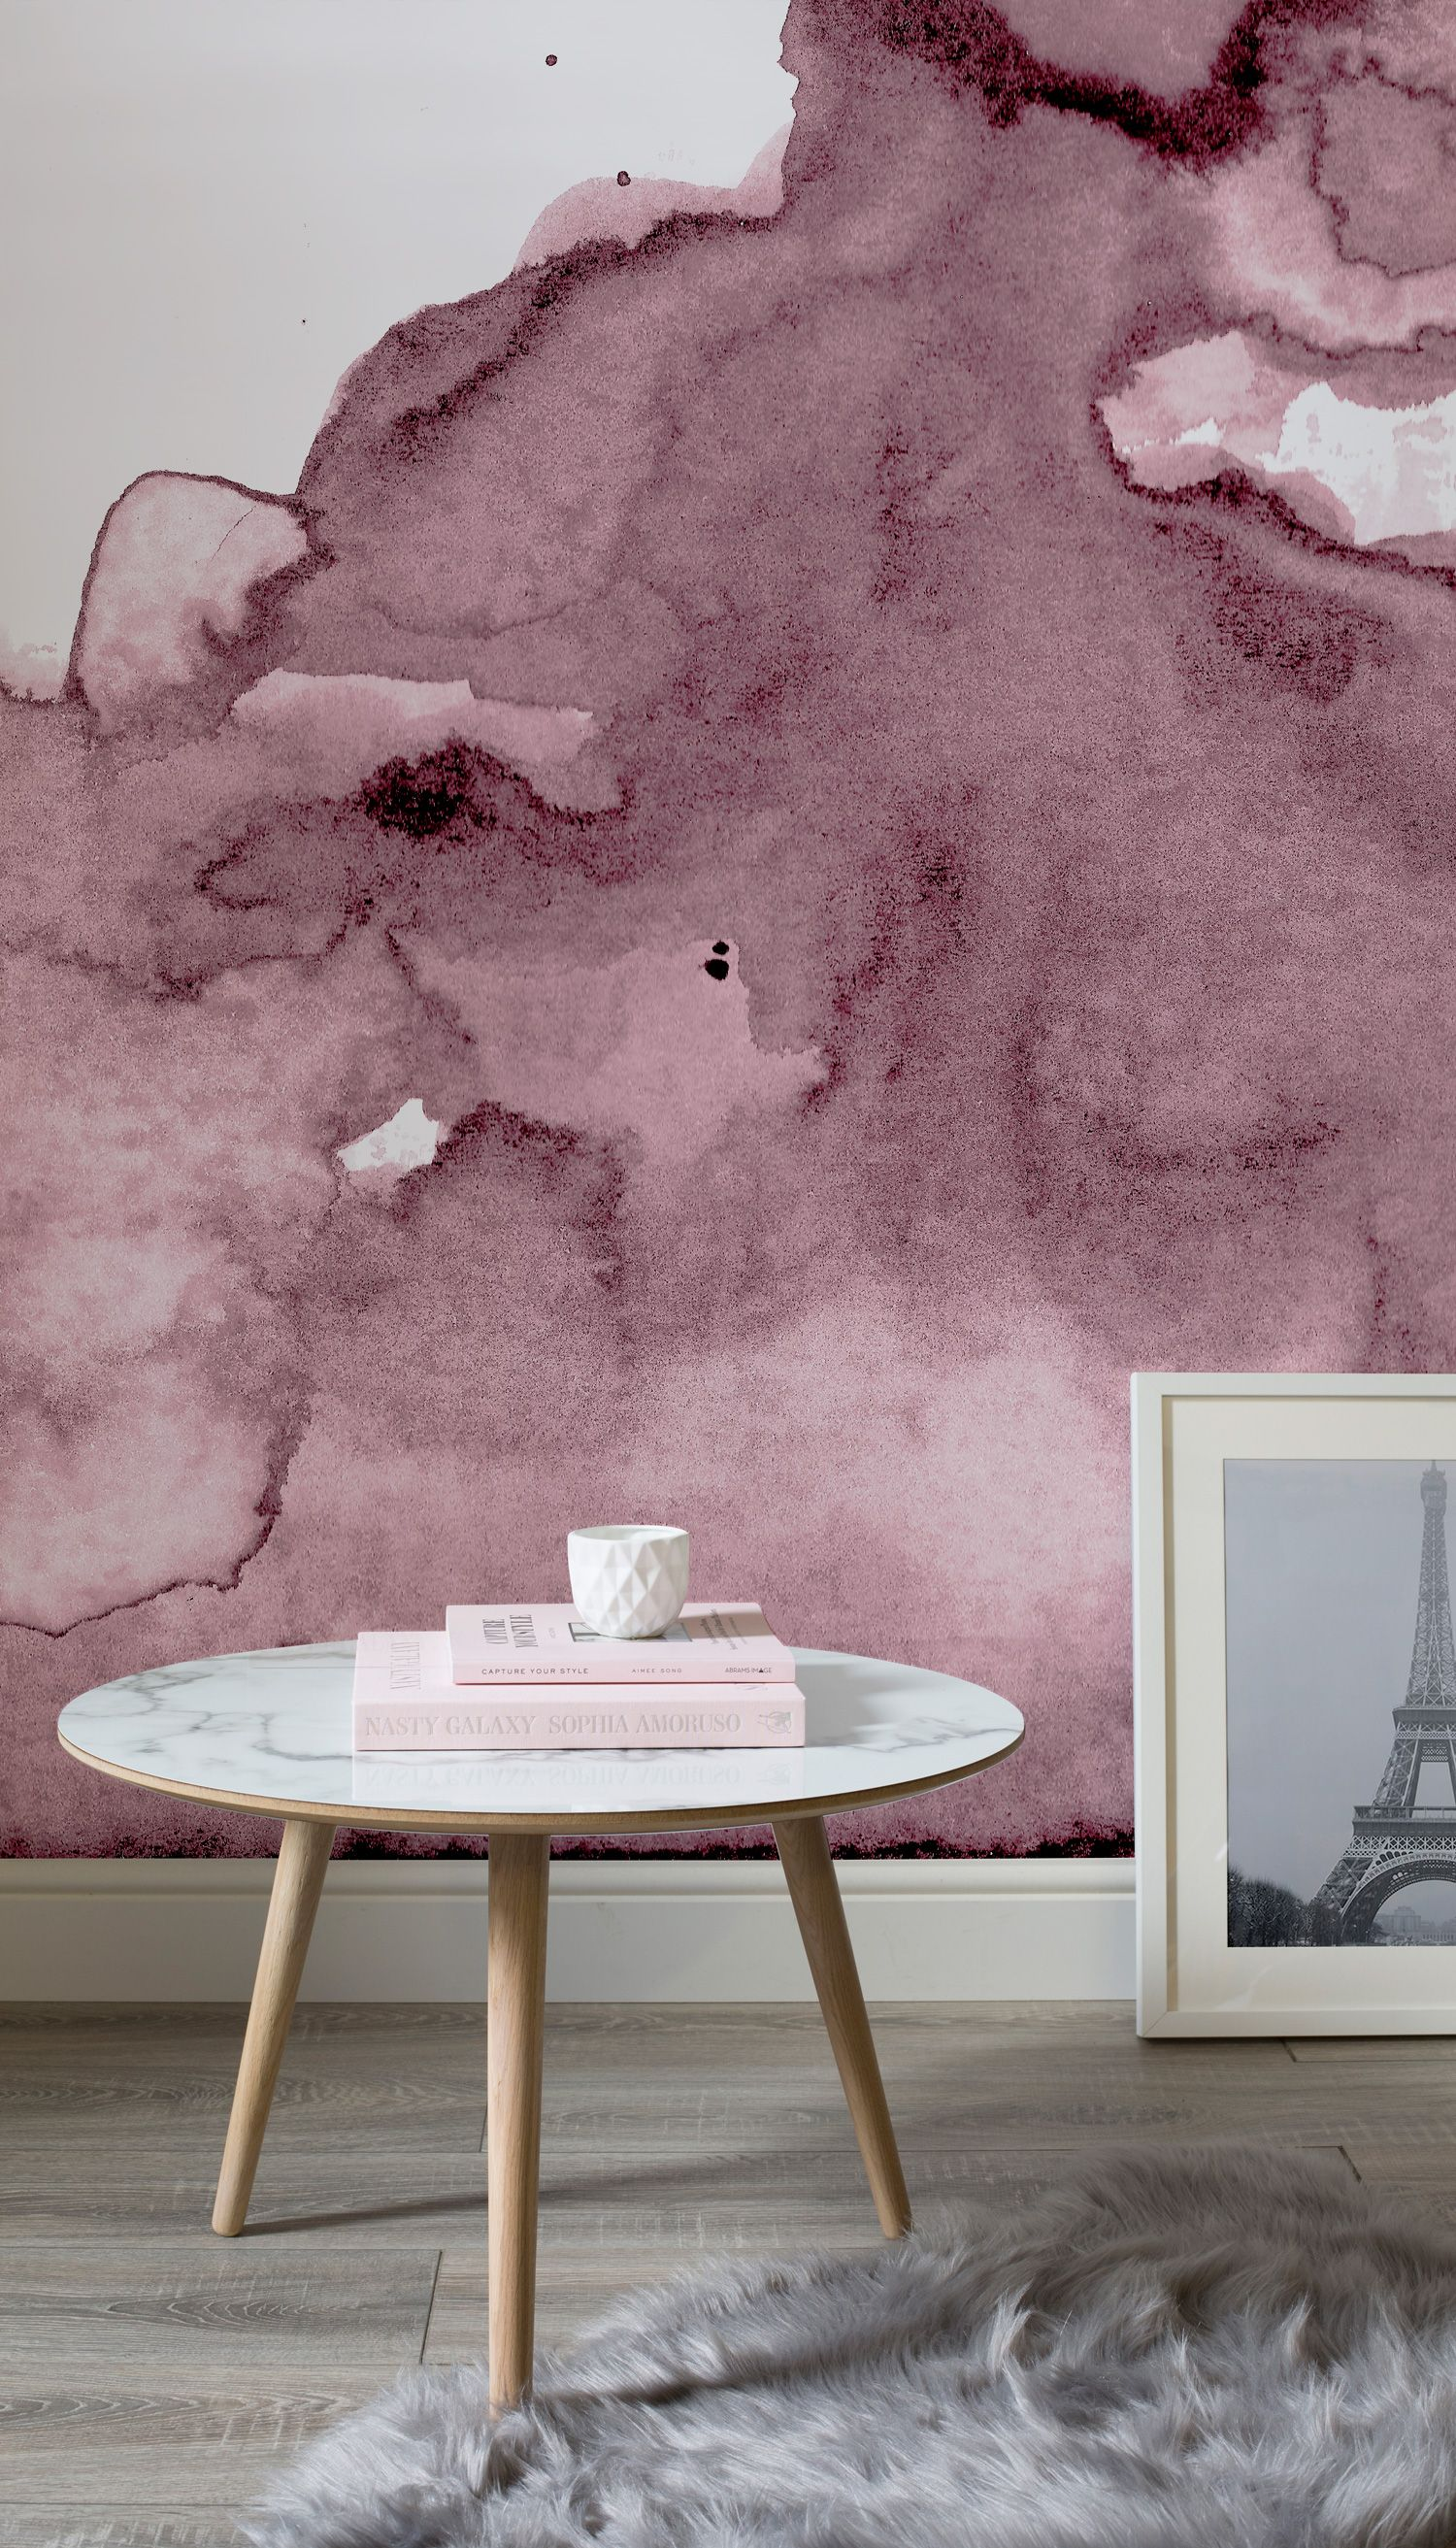 Dusty Pink Watercolor Wall Mural Ev I 231 Tasarımı Ev I 231